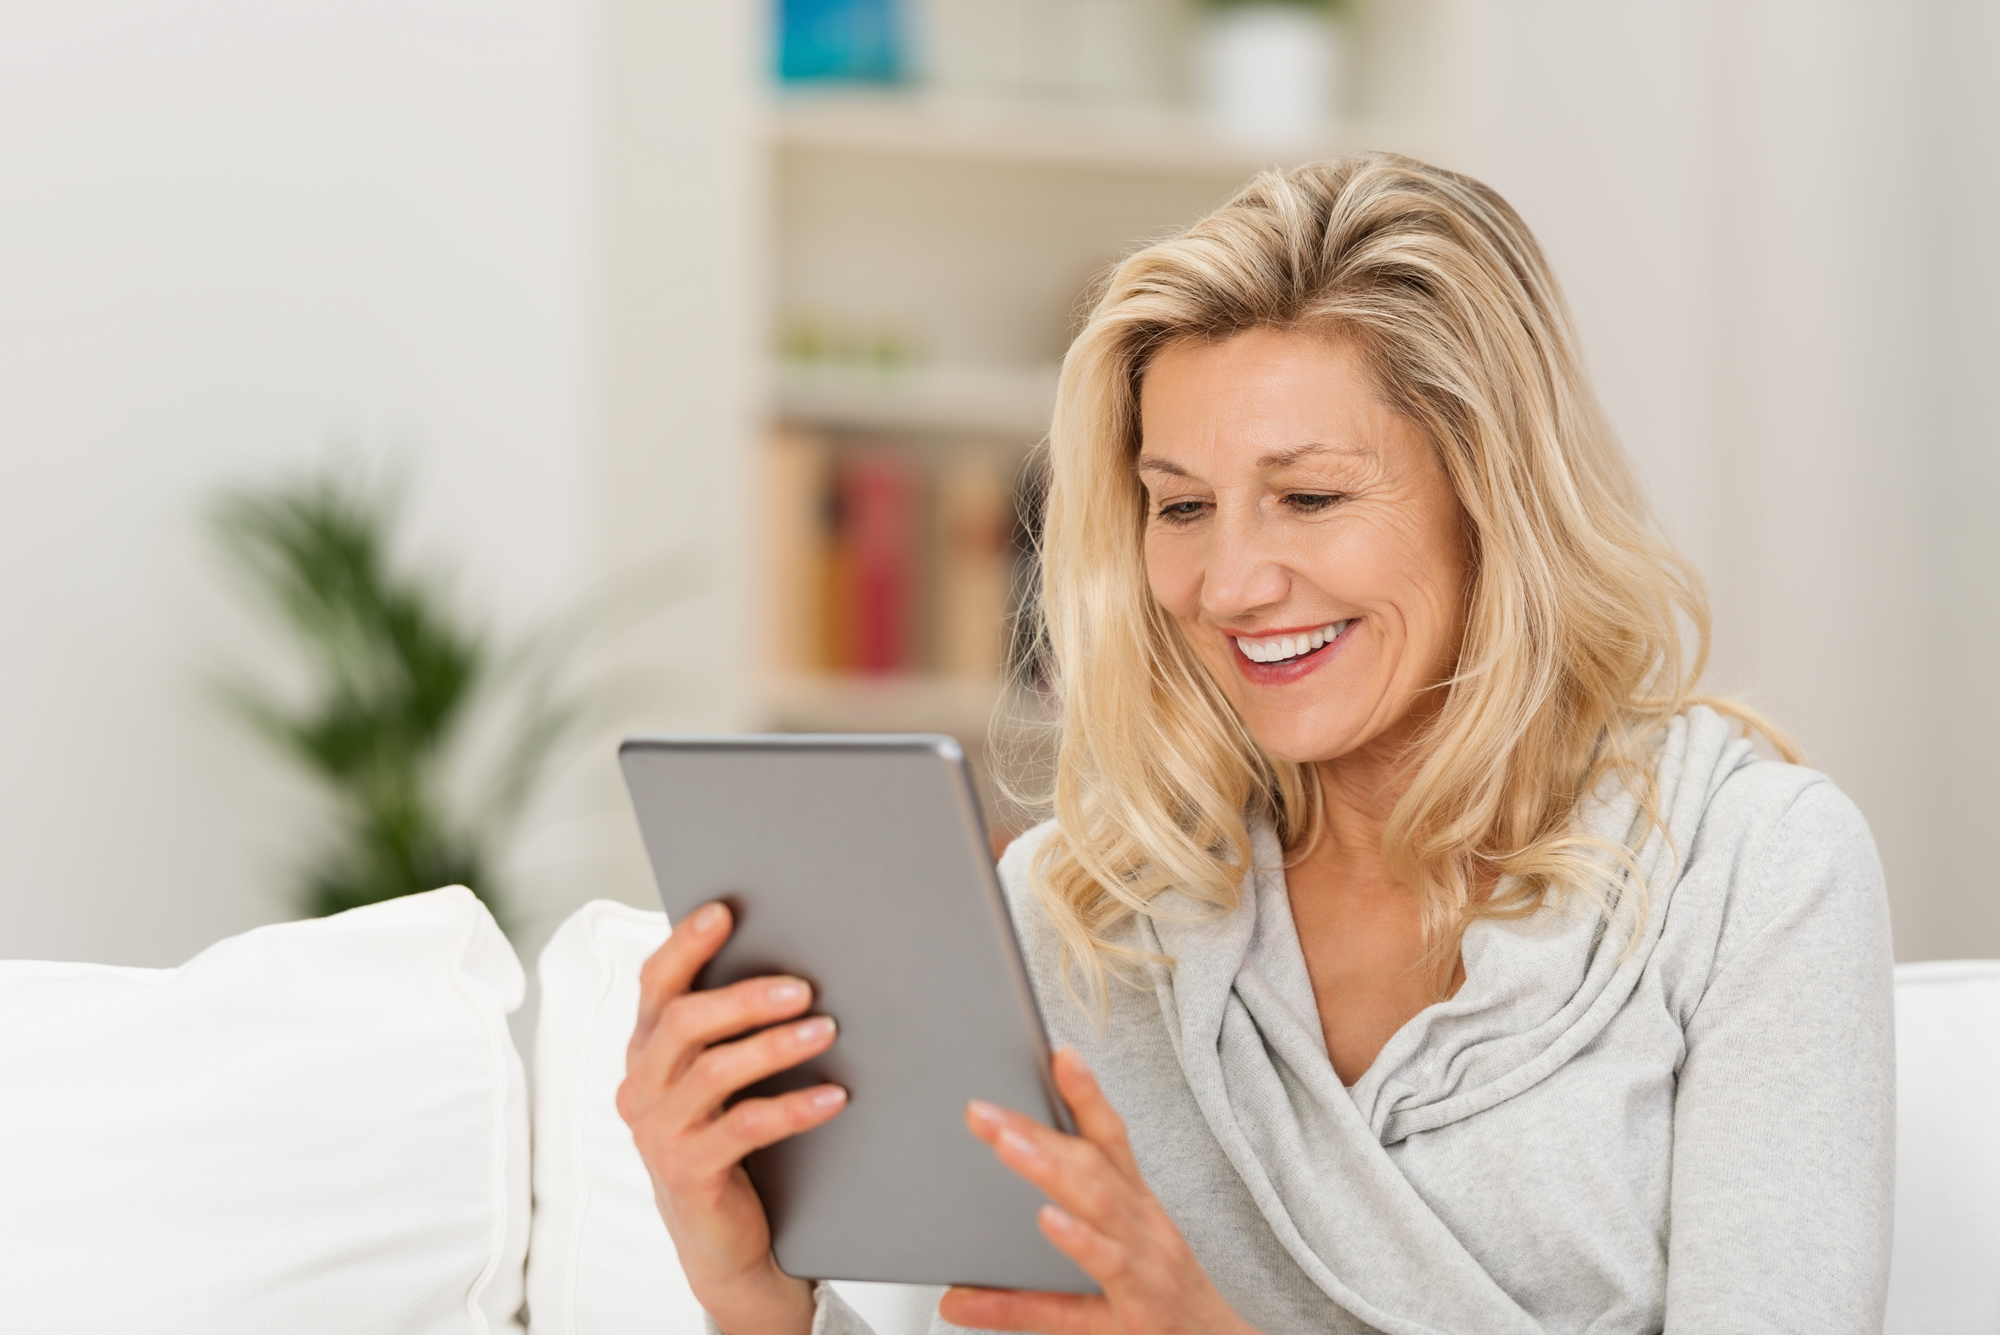 dating websites for middle aged single woman Matchcom continues to redefine the way single men and single women meet, flirt, date and fall in love, proving time and again that you can make love happen through online dating and that lasting relationships are possible.